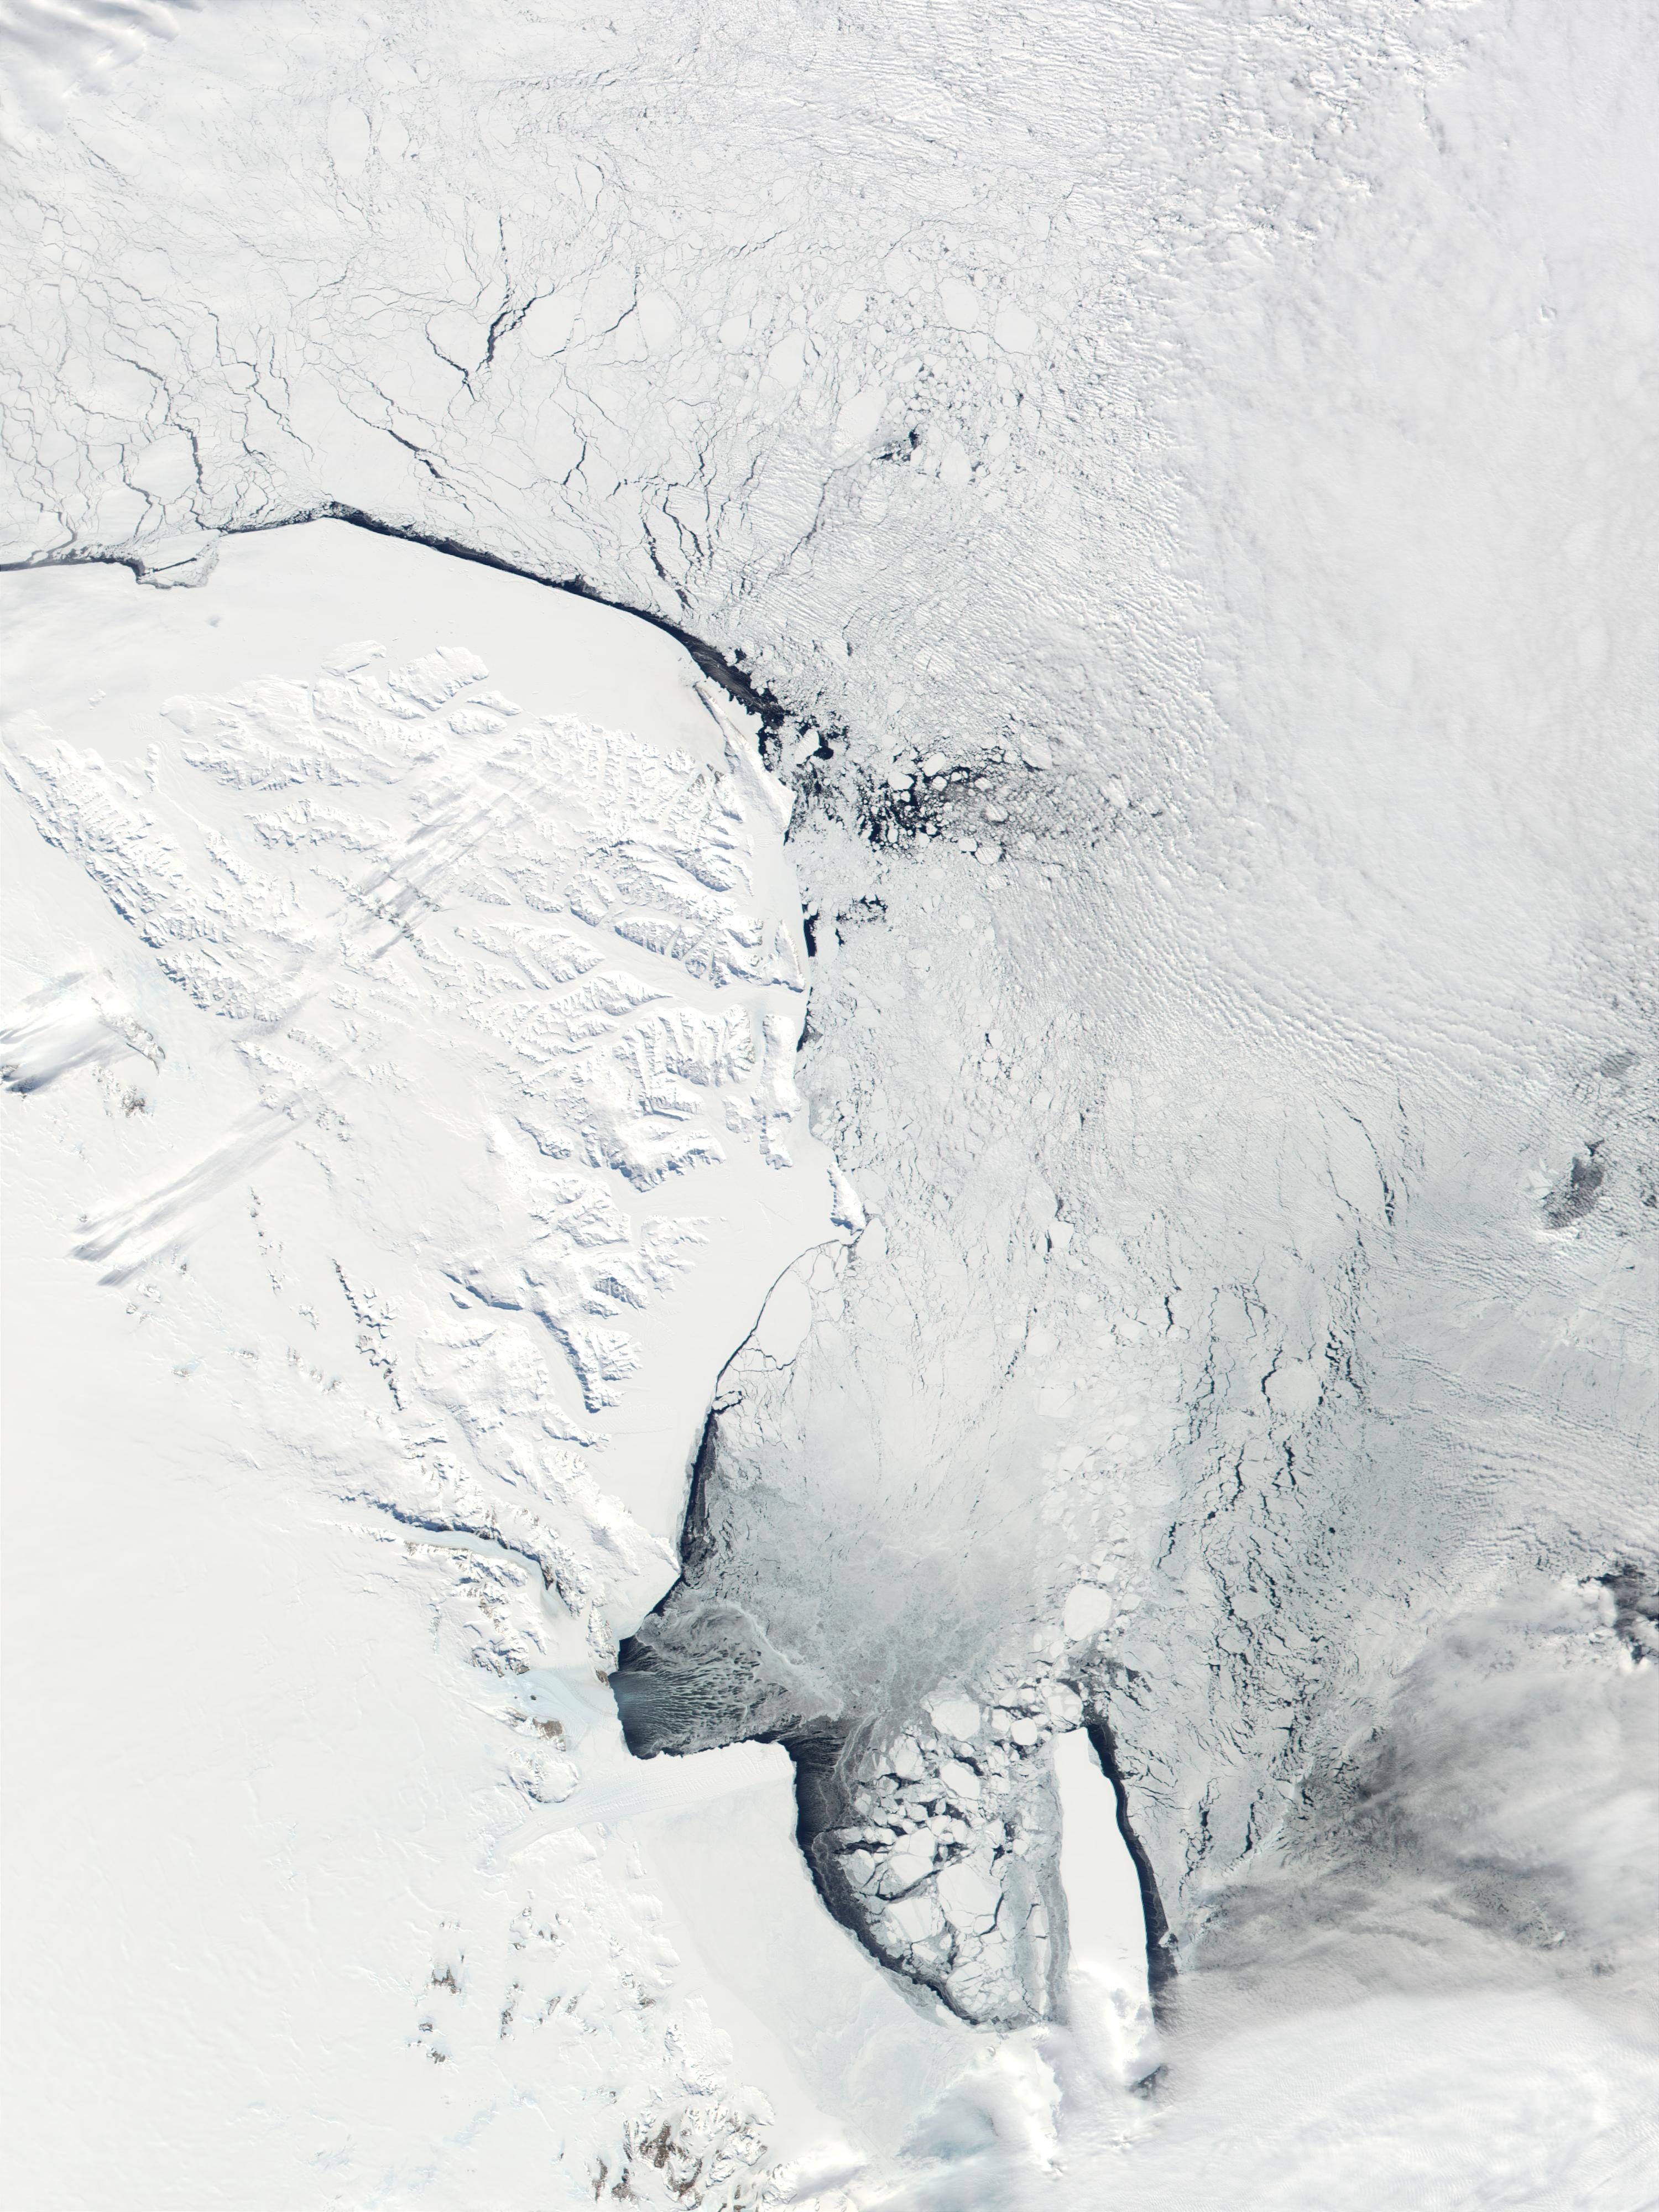 Victoria Land and Ross Sea, Antarctica - related image preview